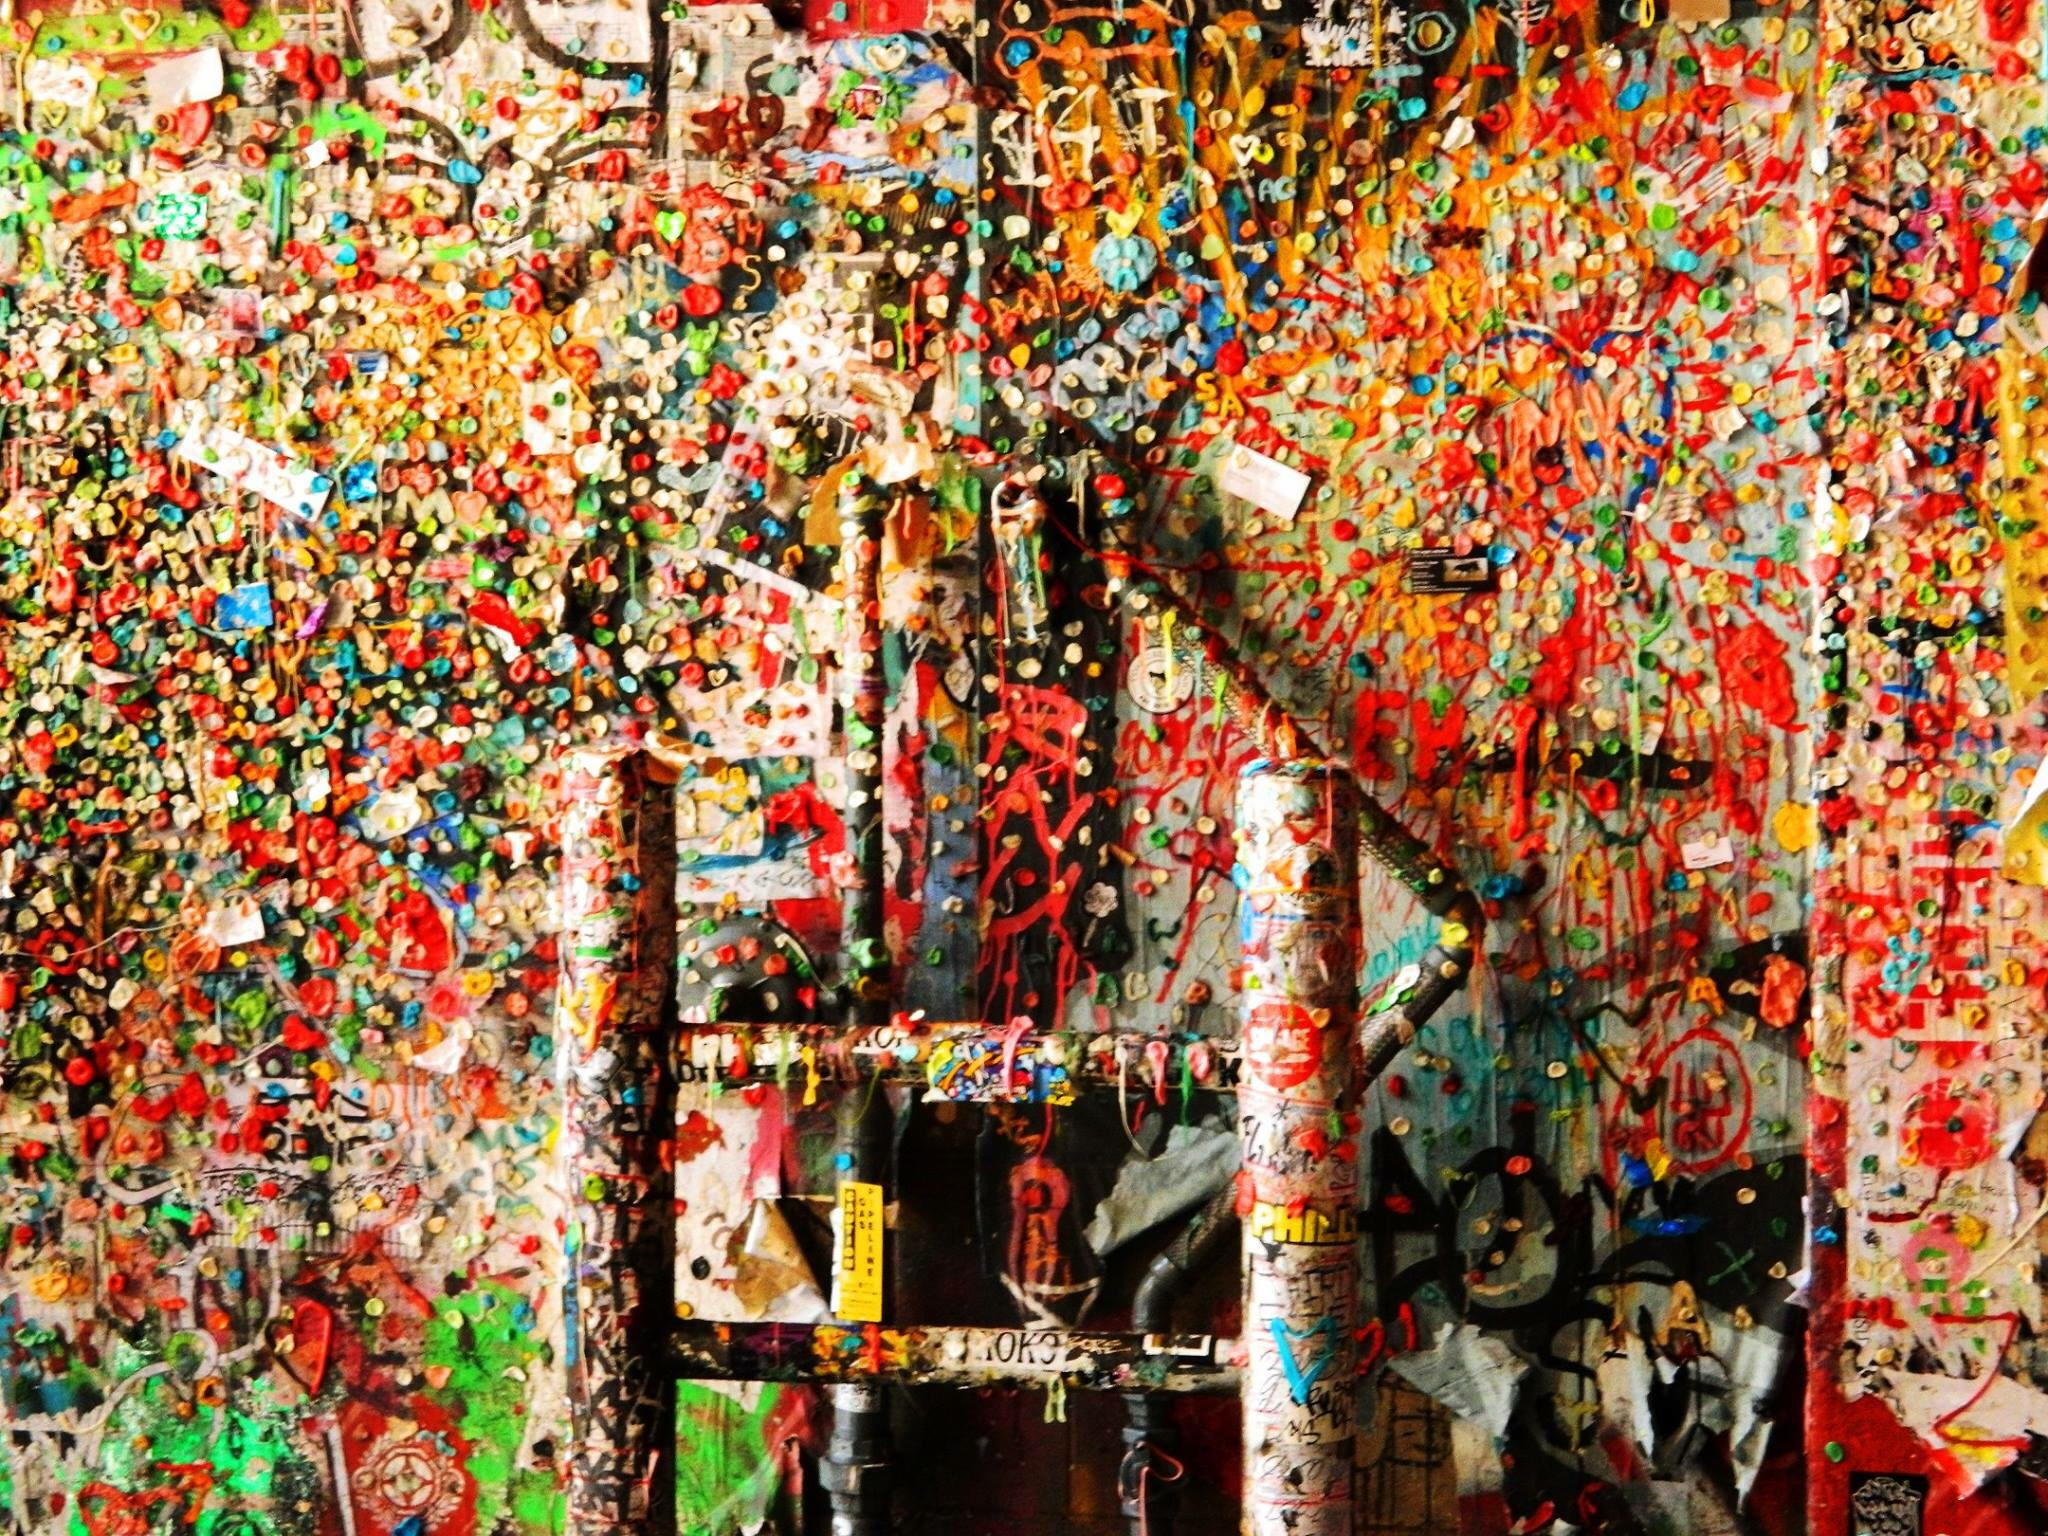 Gum Wall Photo Contest